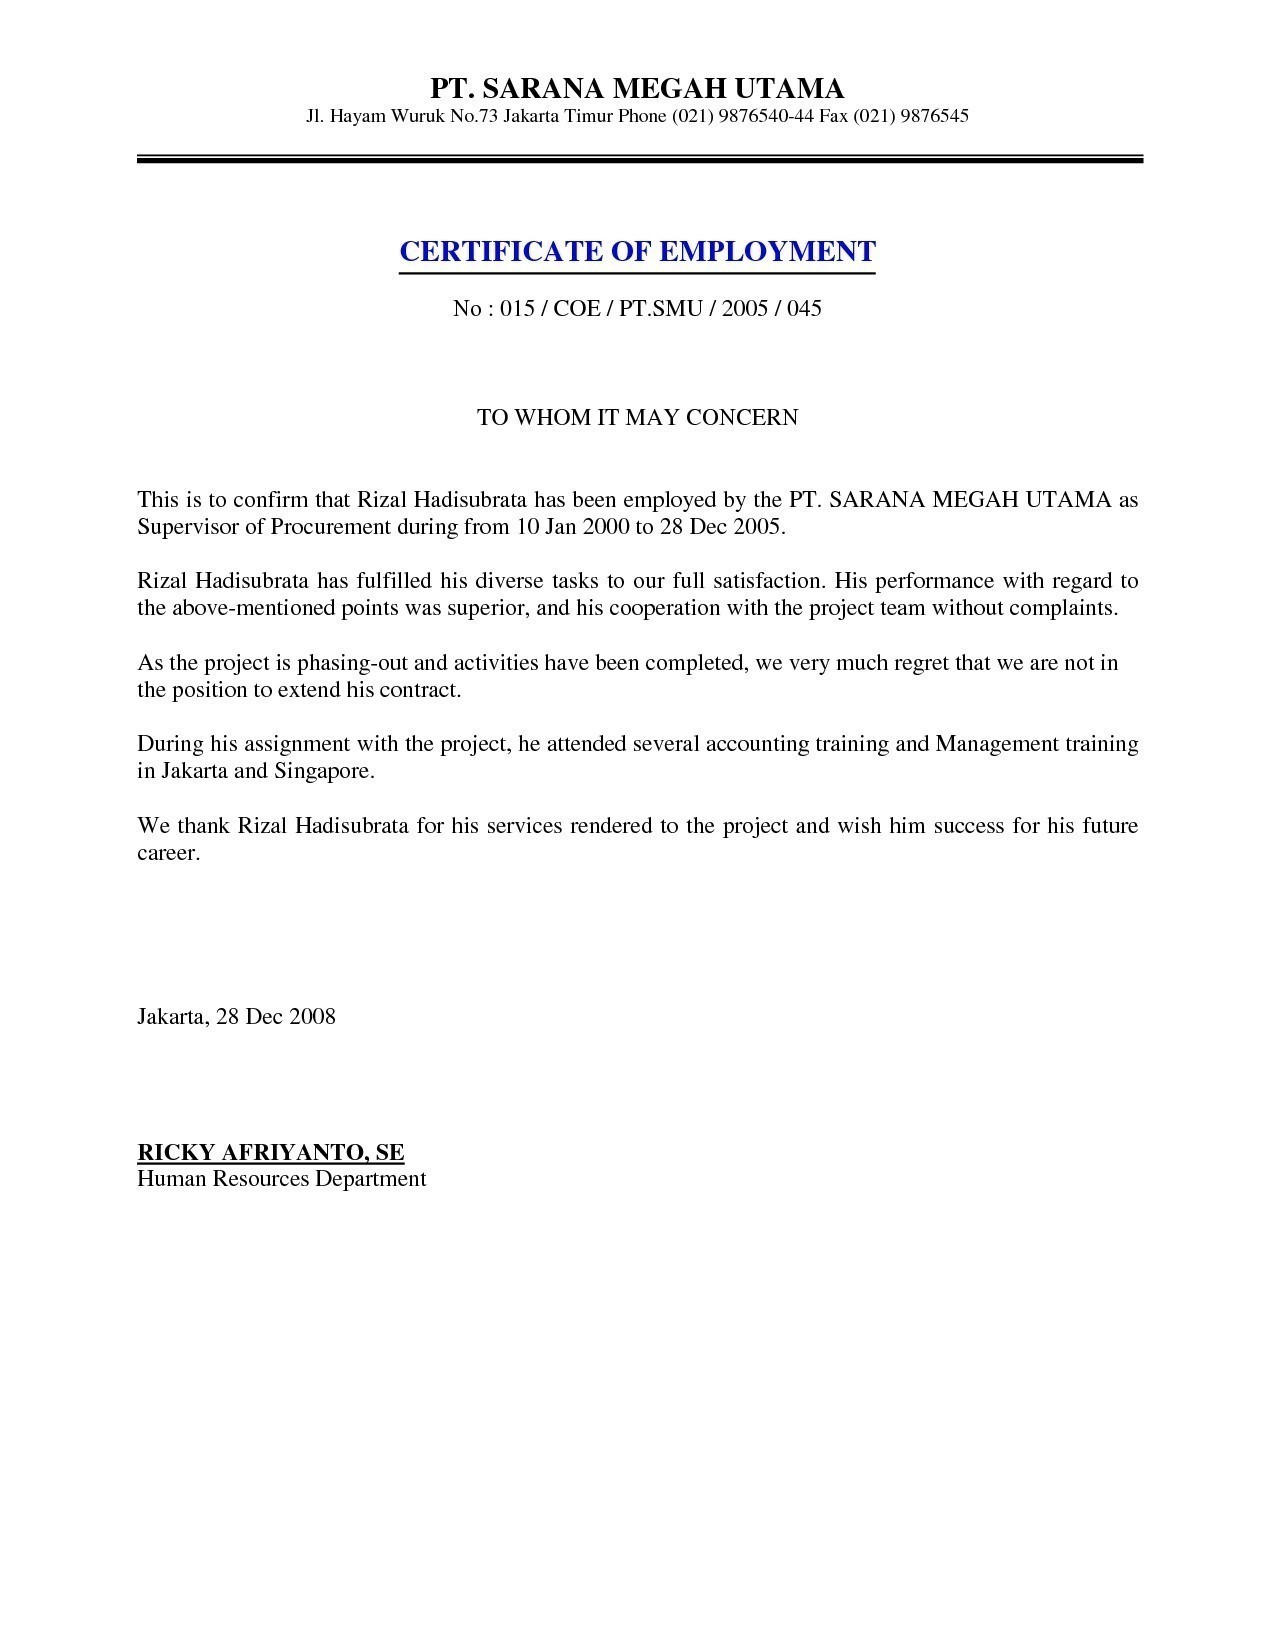 Proof Of No Income Letter Template - Refrence Sample Certificate Employment with Salary Indicated Best